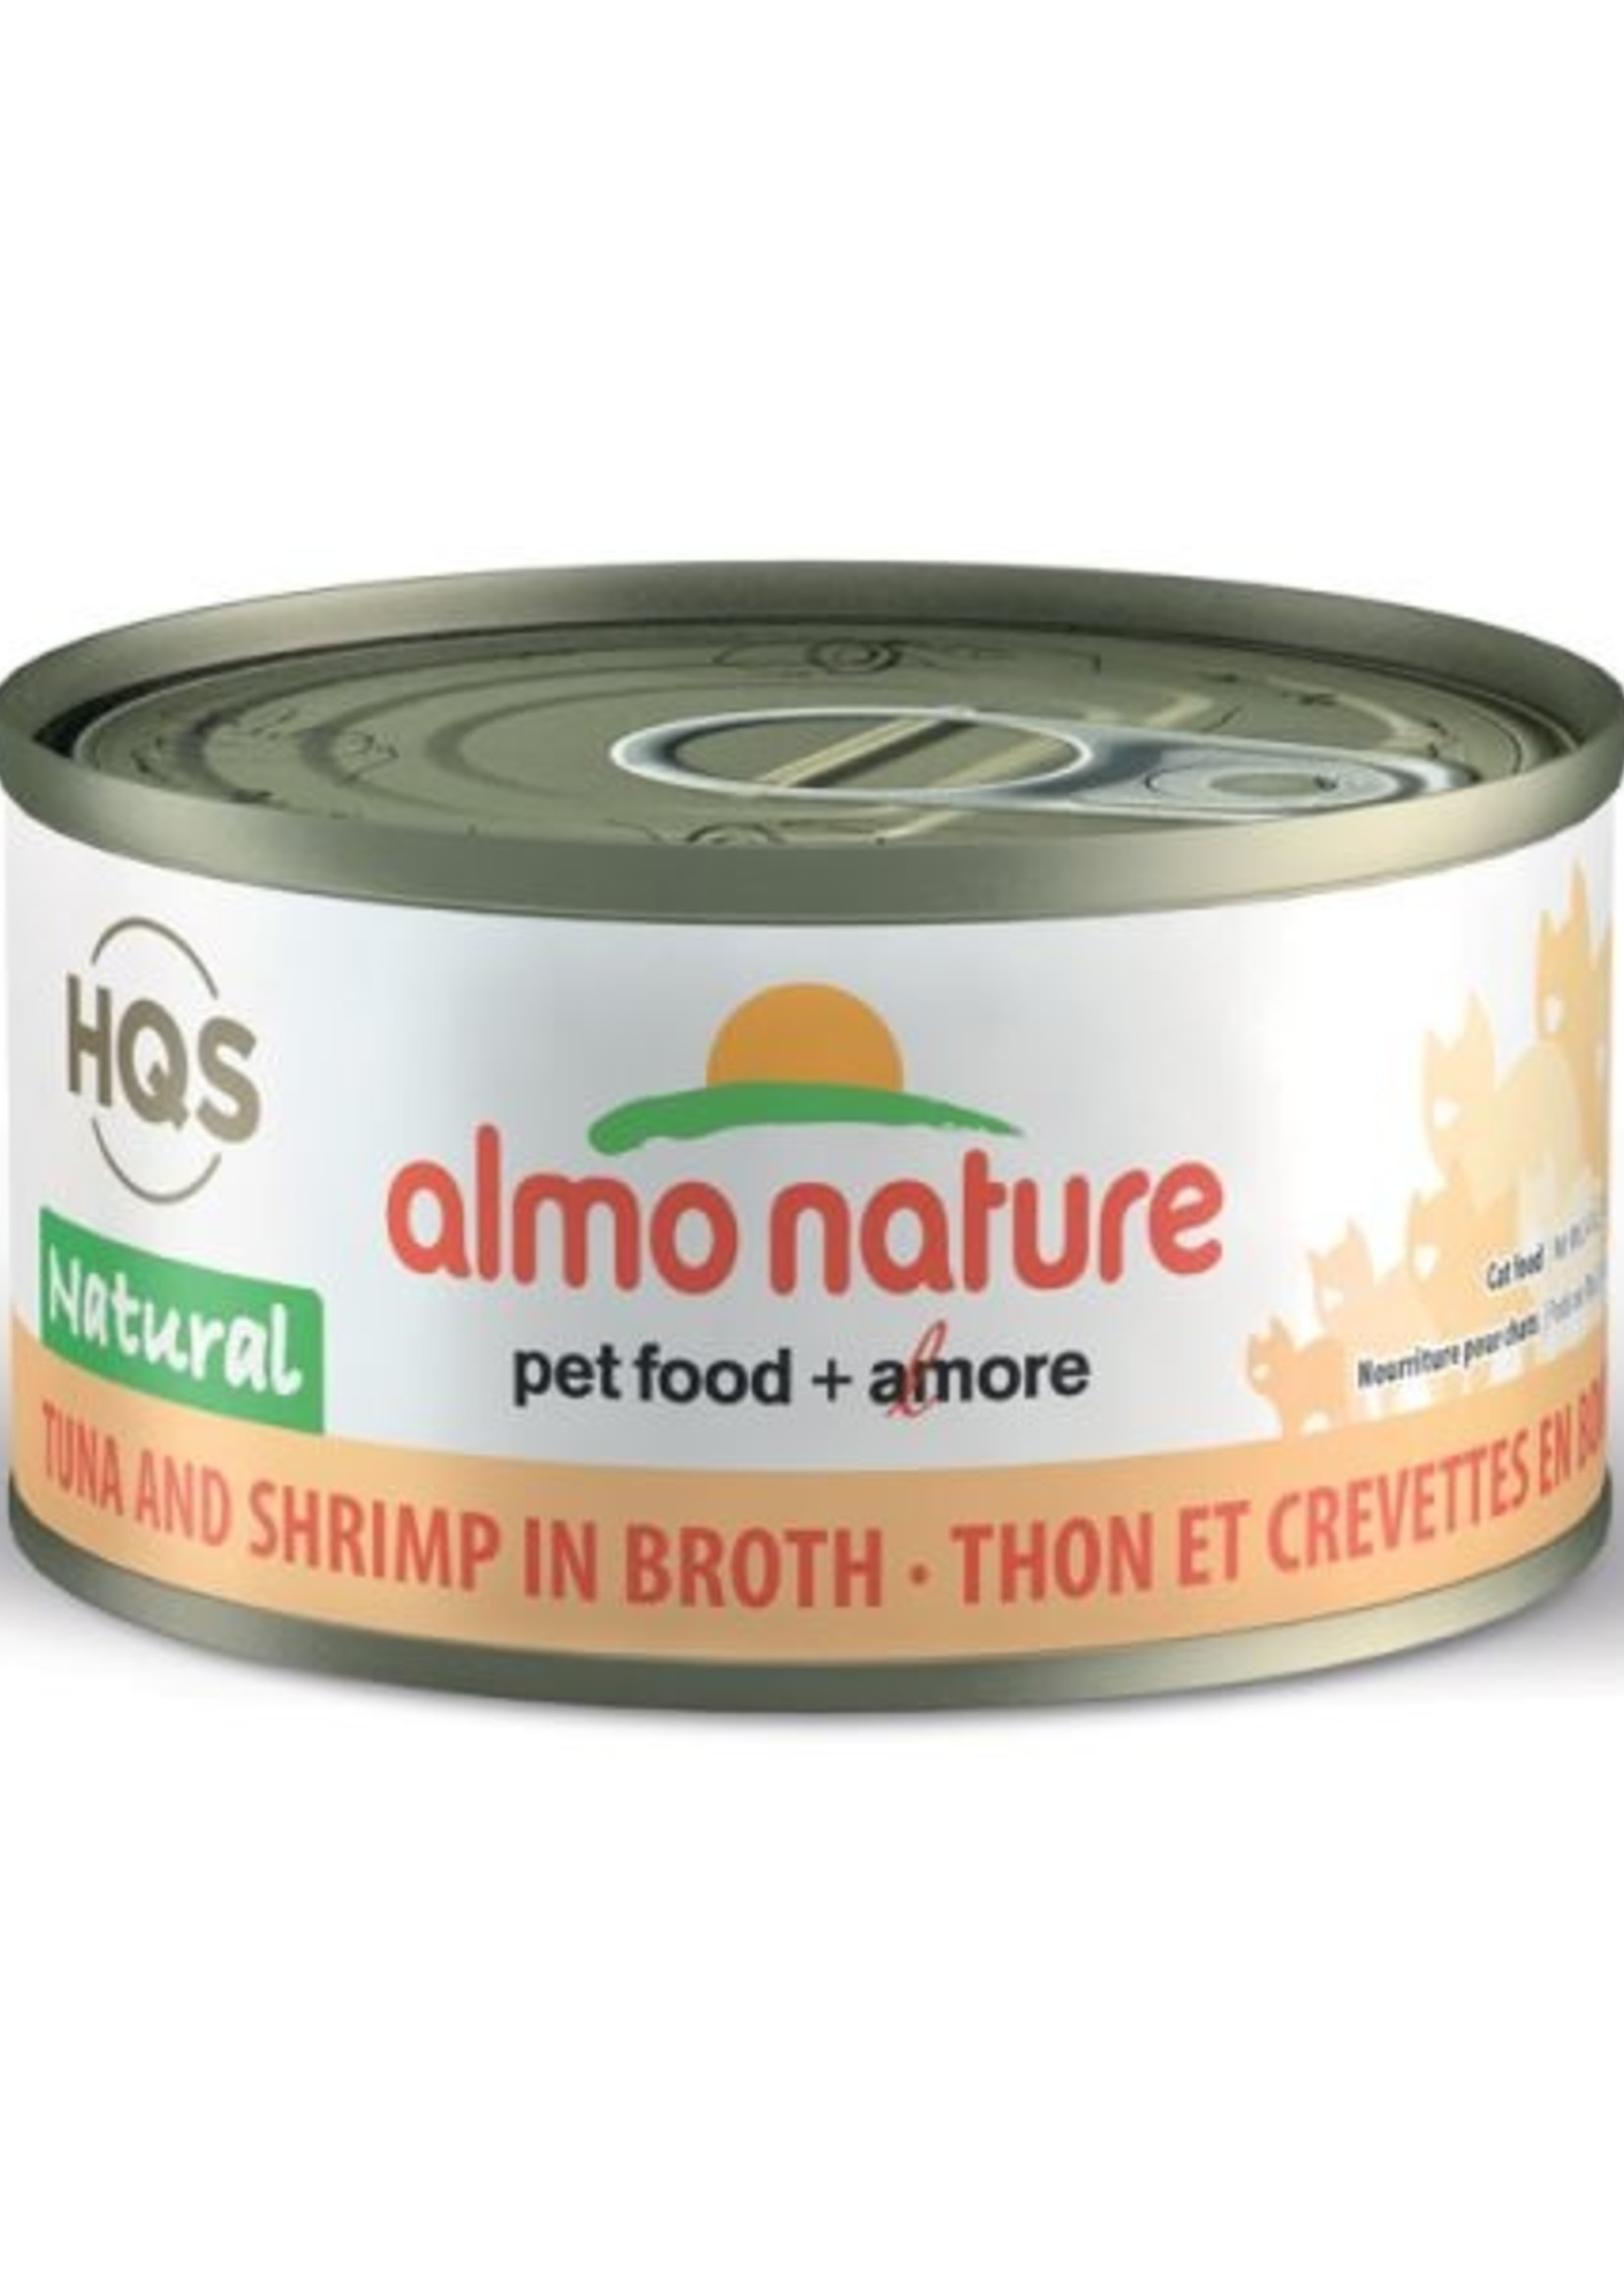 Almo Nature© Almo Nature HQS Natural Tuna and Shrimp in Broth 70g